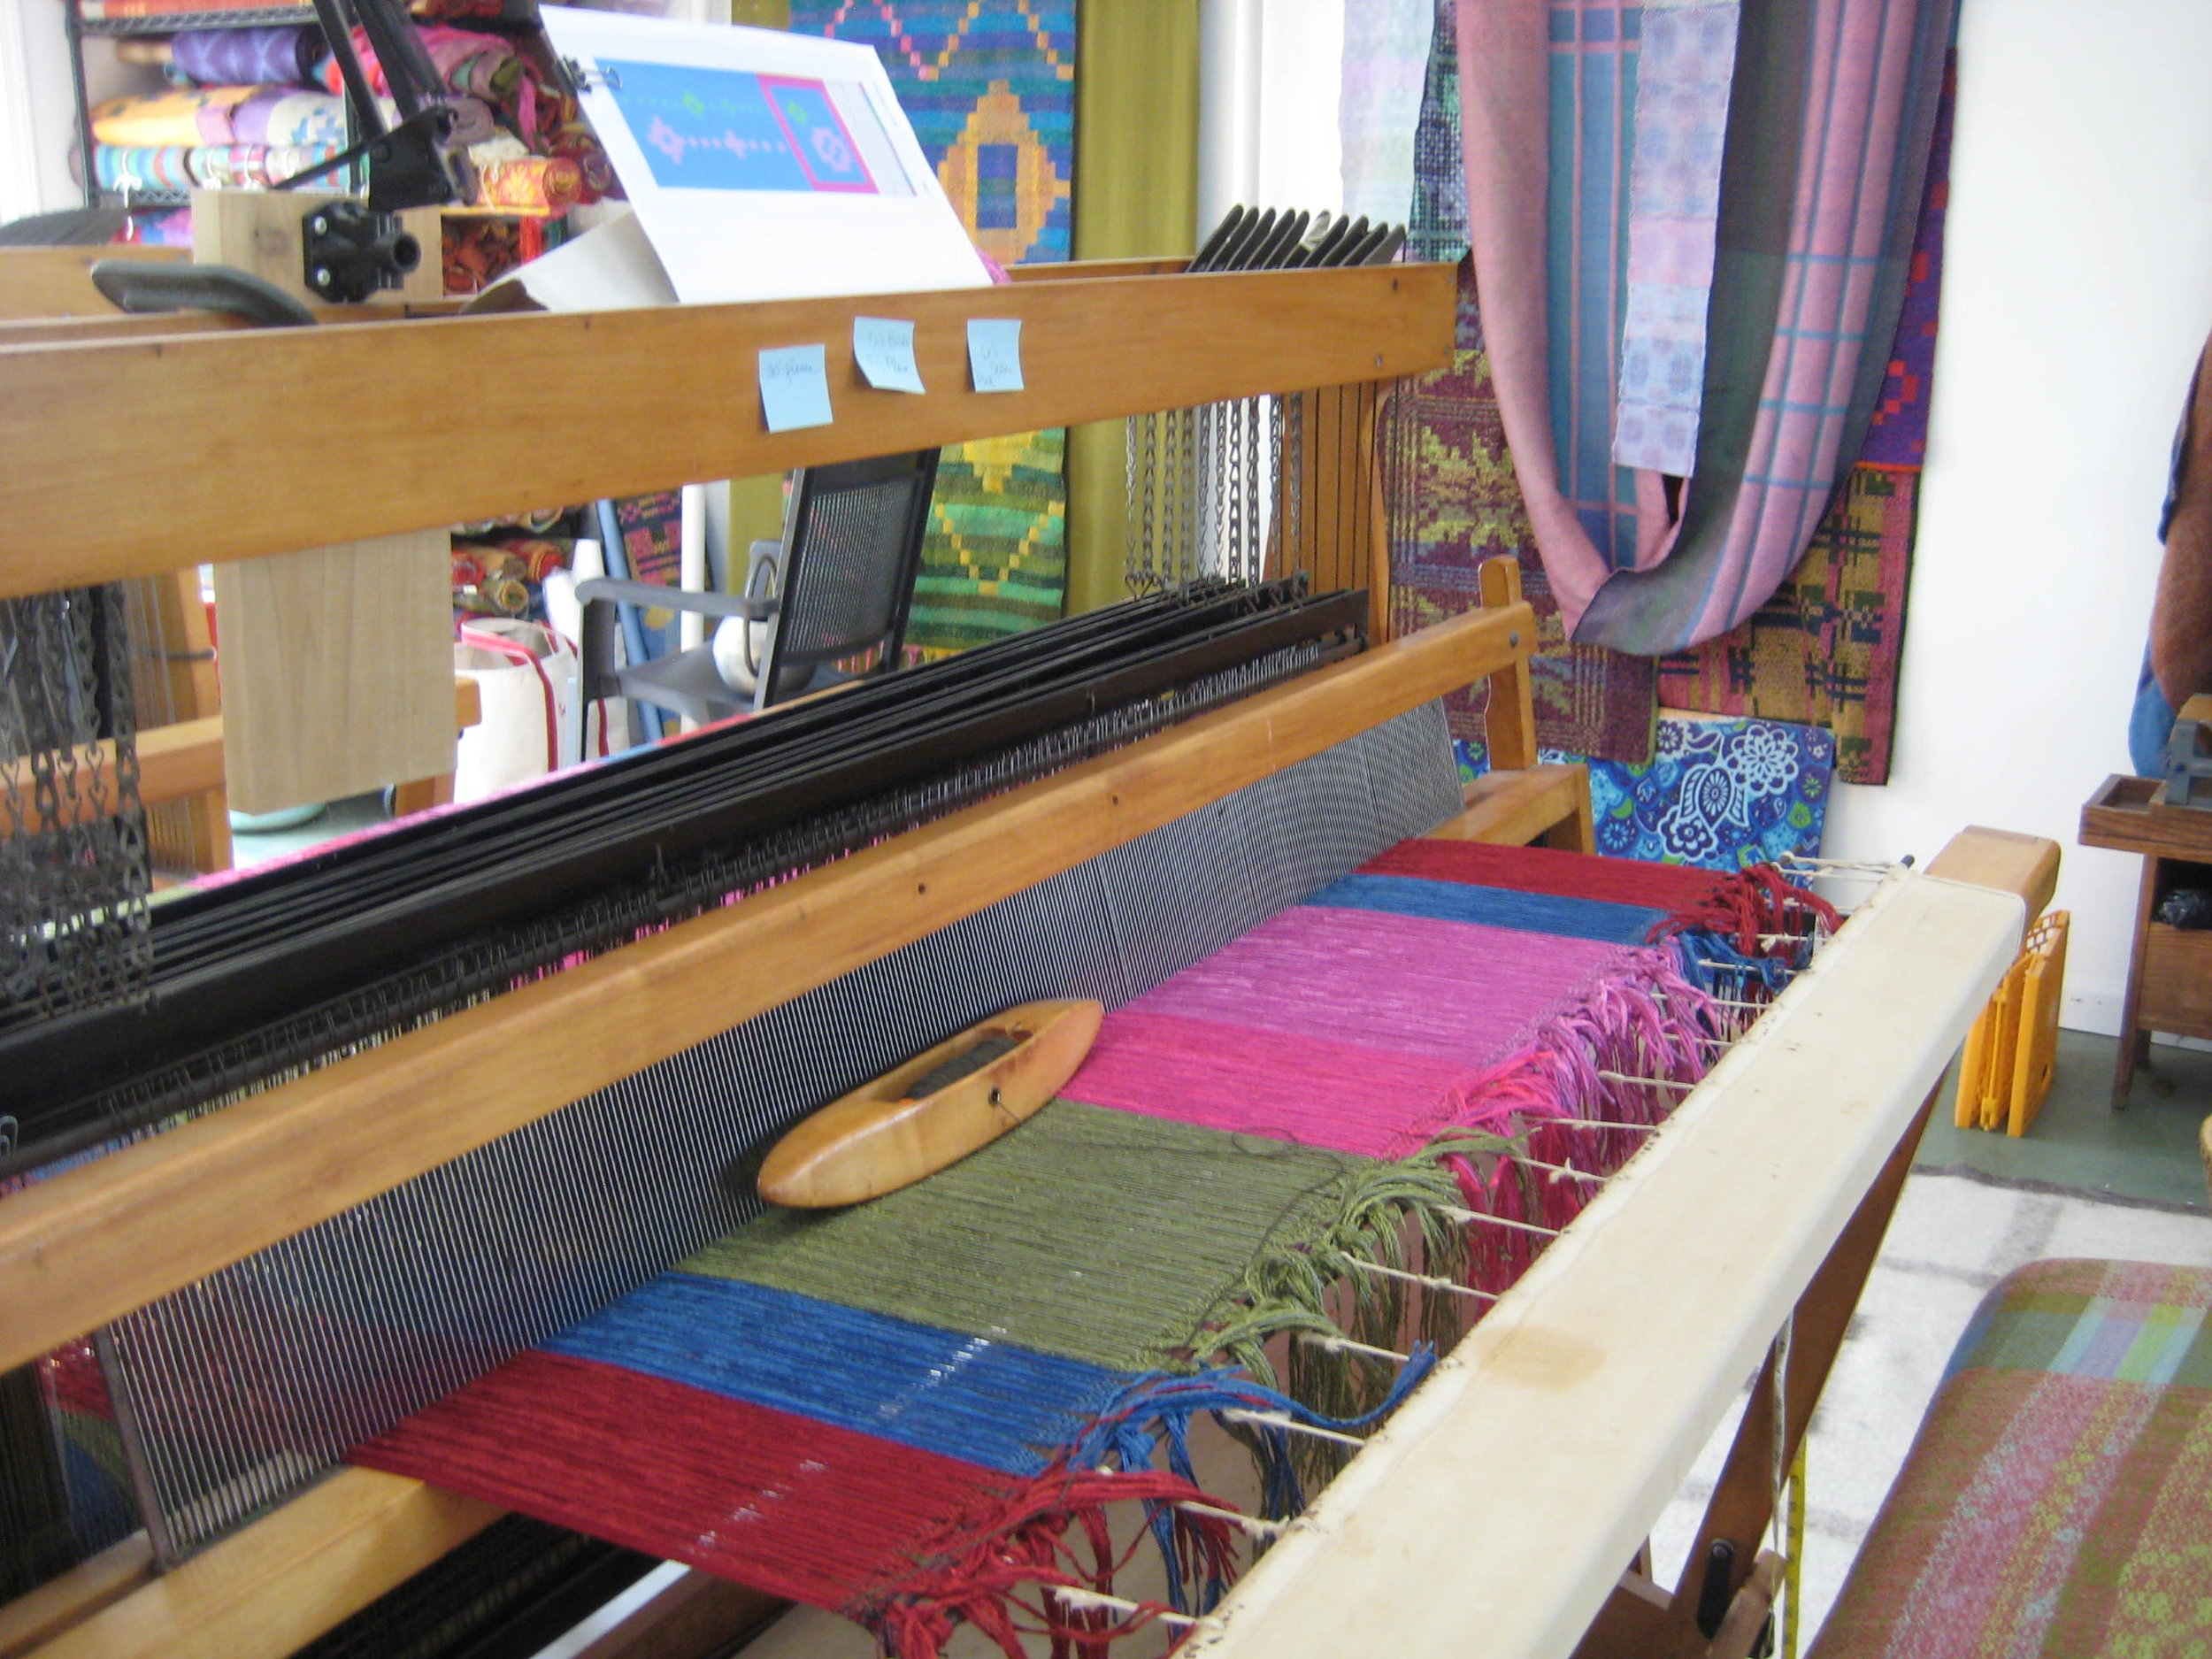 When the warp is wound onto the loom, the warp is tied onto the front beam or cloth beam and the tension is adjusted. Then one tests for and corrects mistakes in threading.